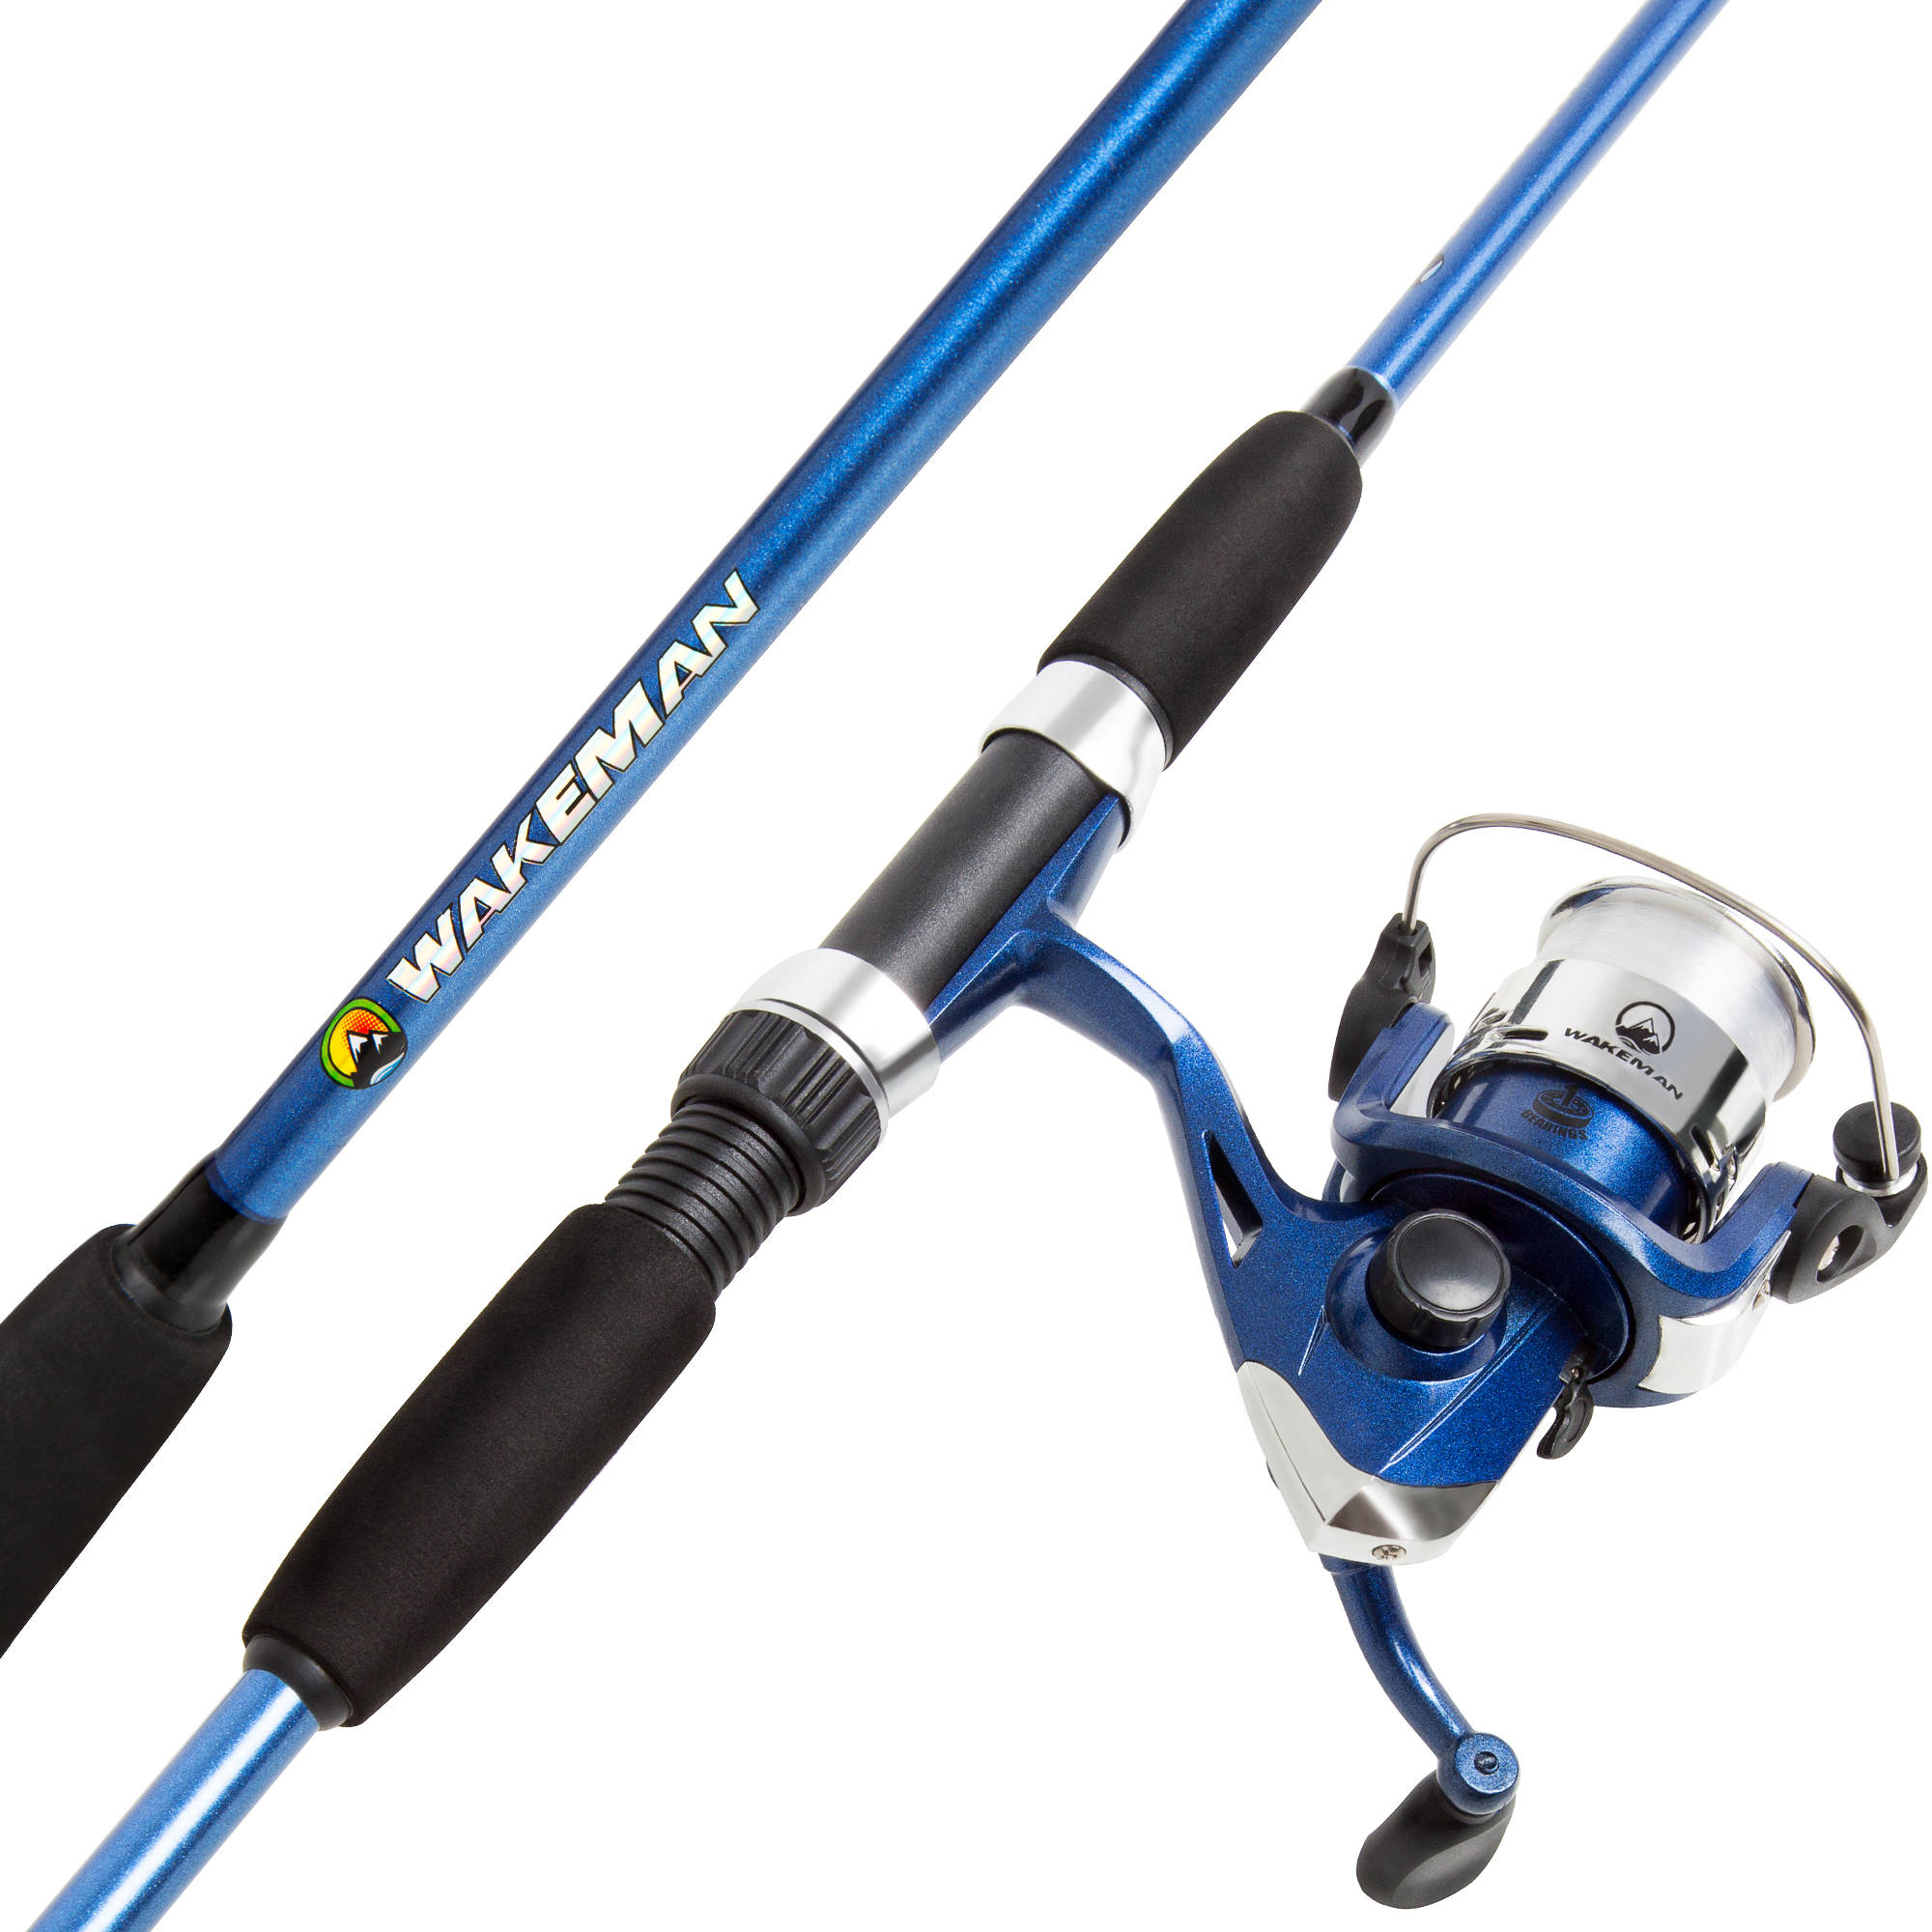 Shop variety of Shakespeare fishing products on sale now. Free shipping on orders over $50!